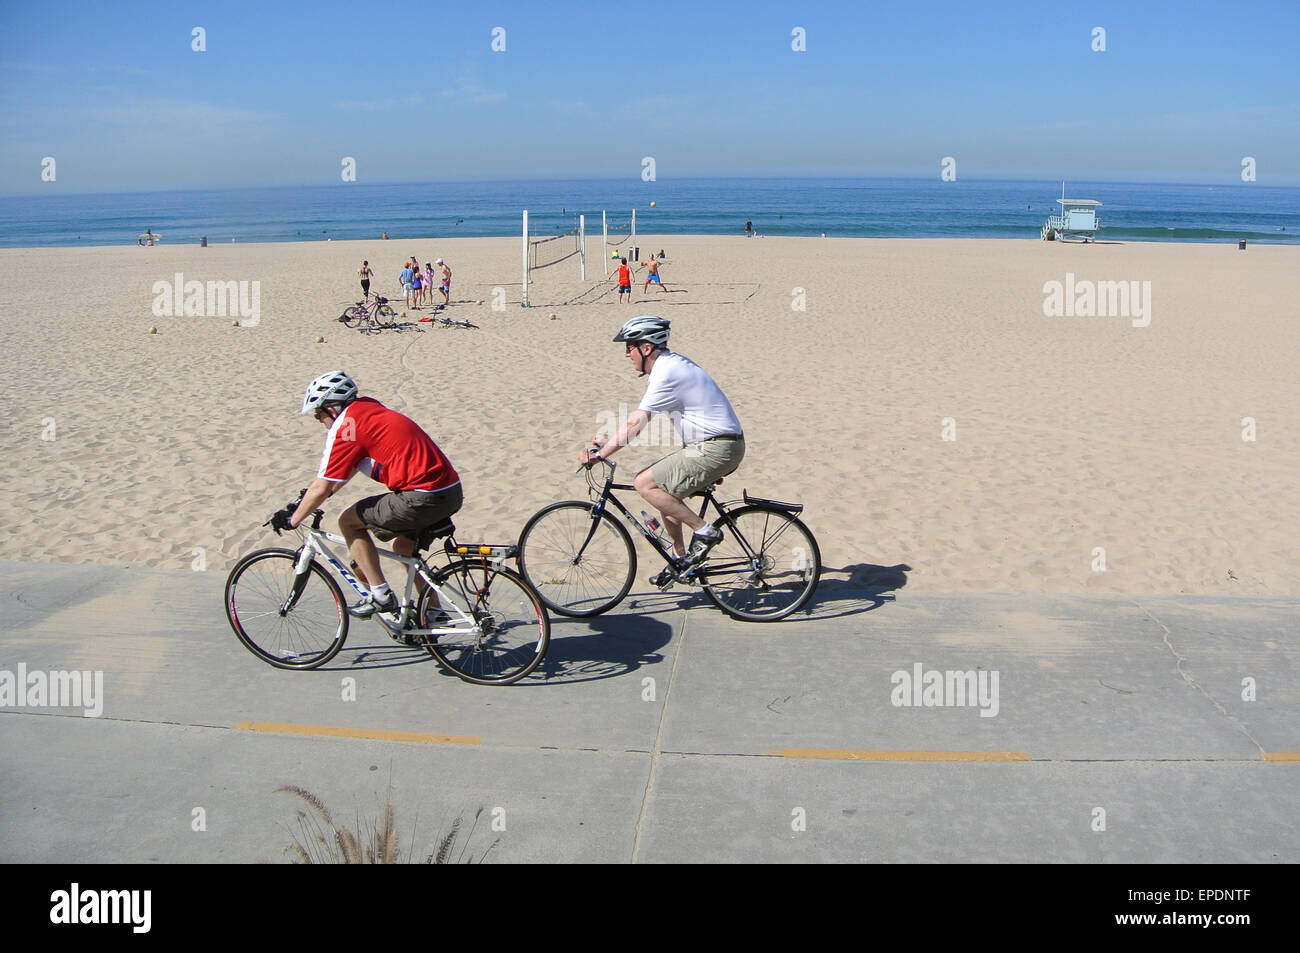 two bicyclists ride on the strand in Manhattan Beach California - Stock Image